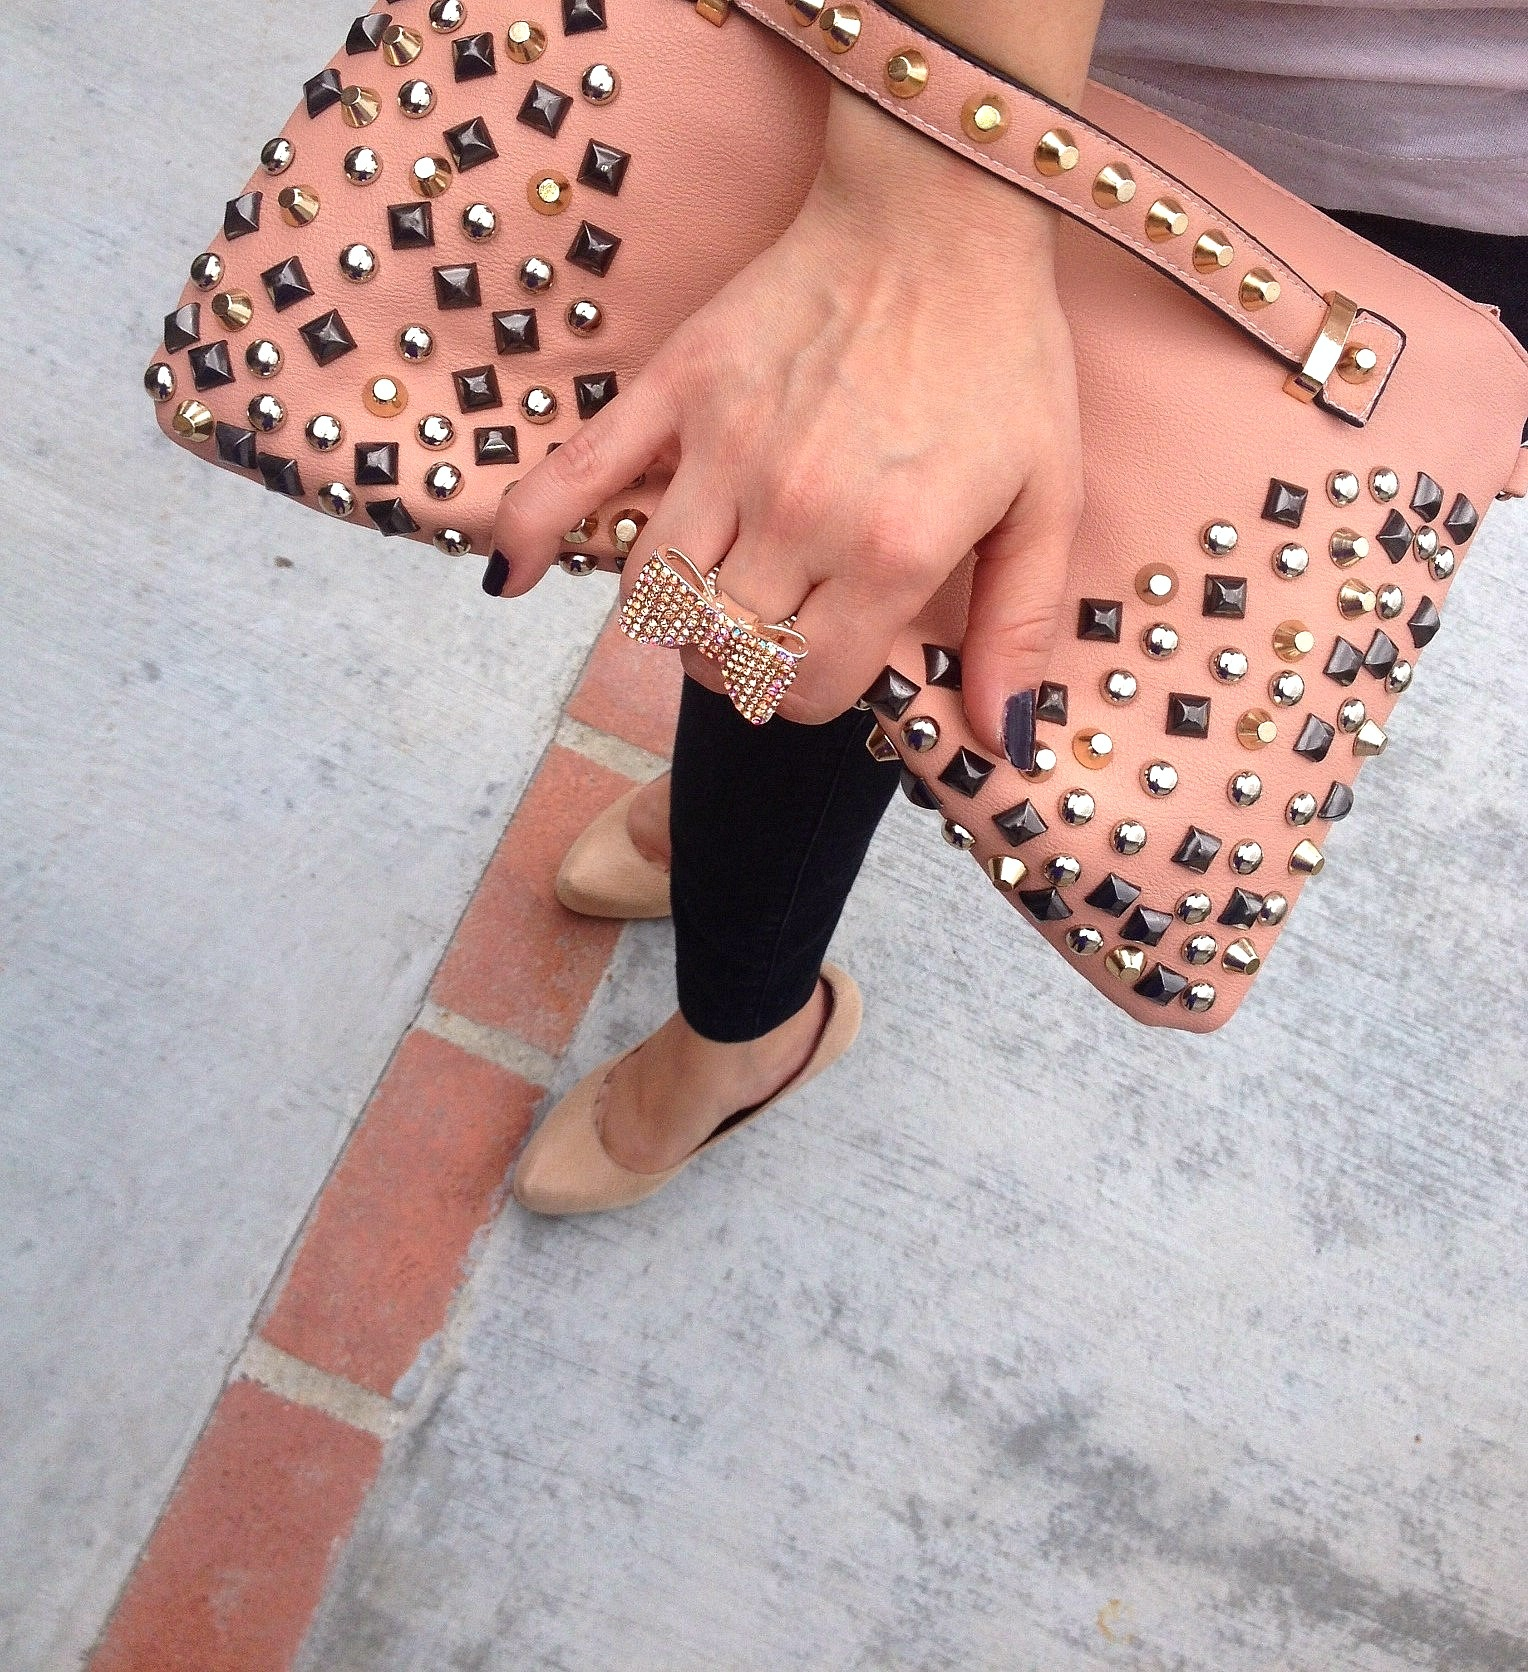 http://shopfairytale.storenvy.com/collections/301686-handbags-clutches/products/2013921-studded-clutch